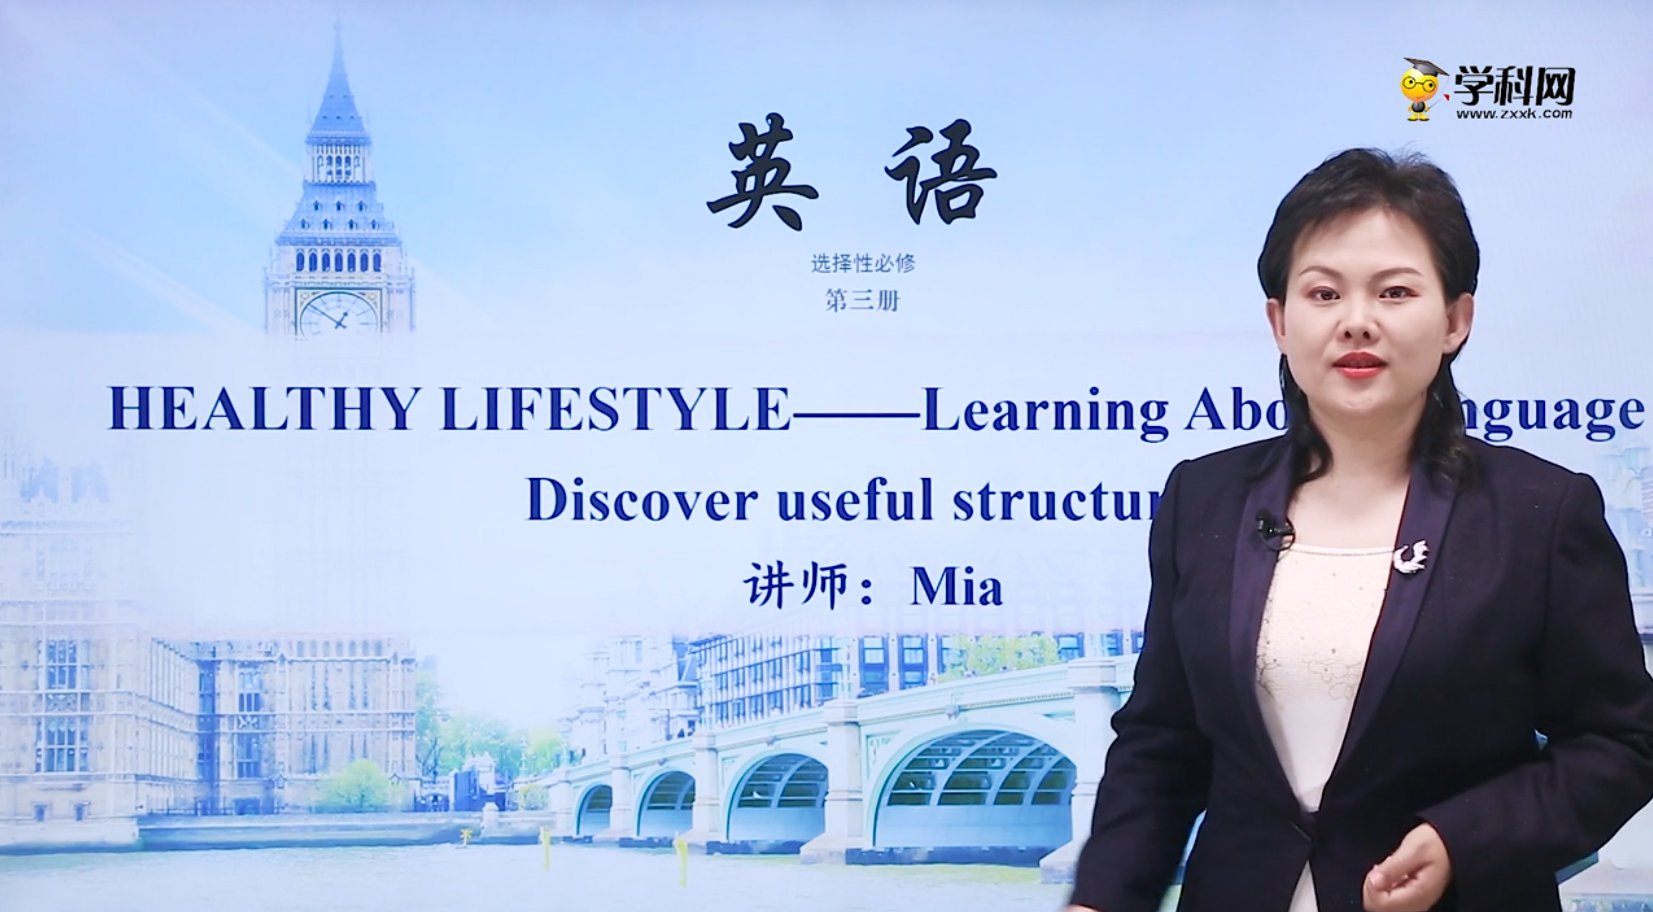 period 3 Learning About Language Discover useful structures(Unit 2 Healthy lifestyle)-高中英语选择性必修3(新教材同步)